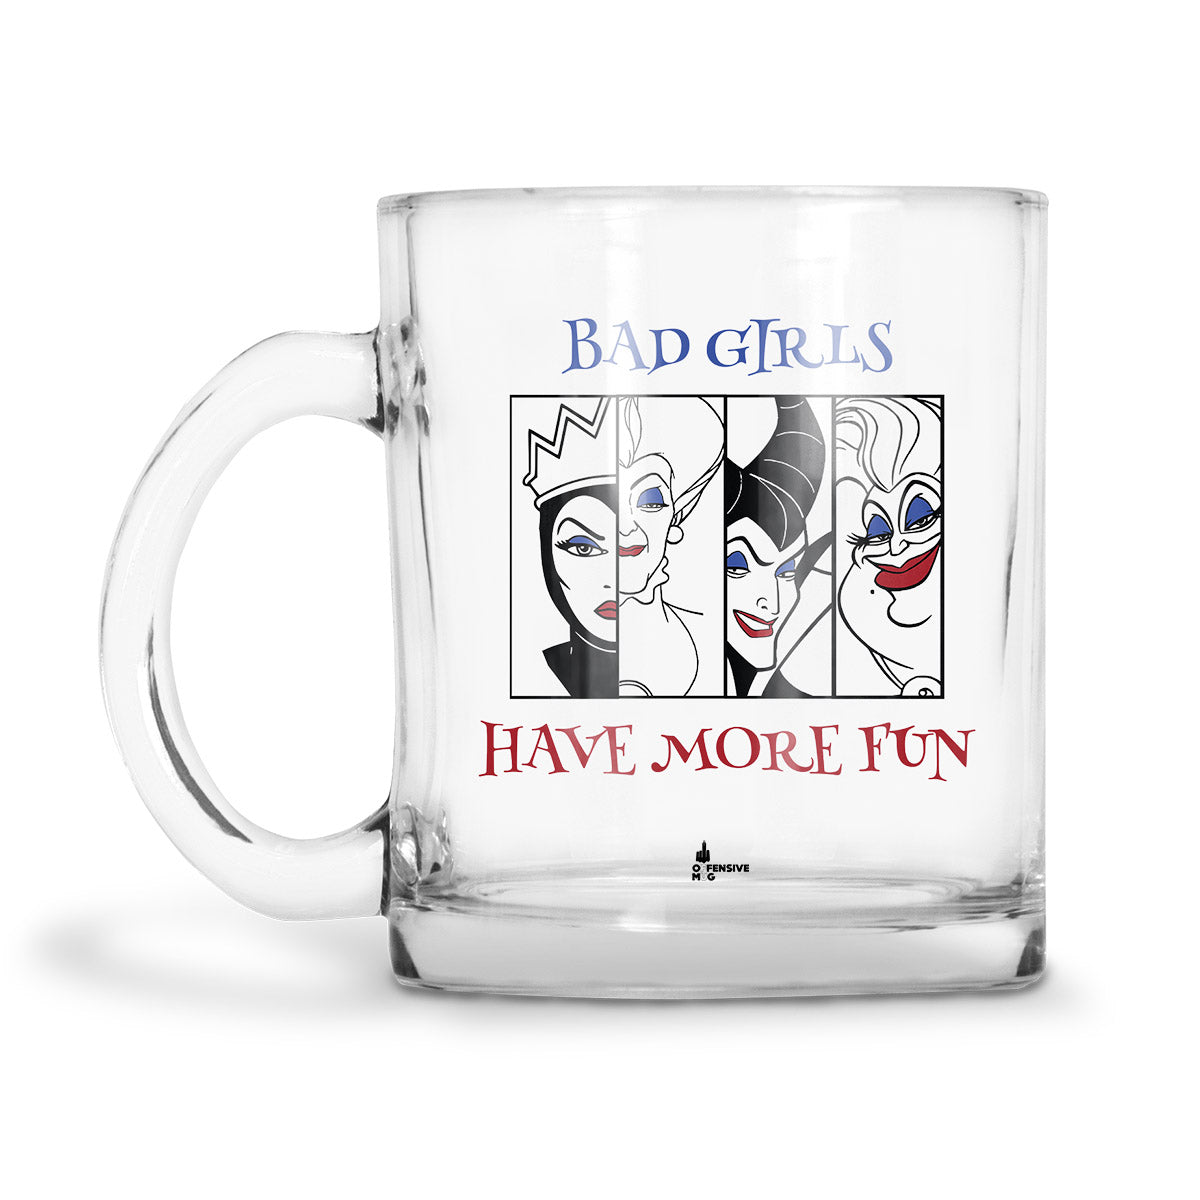 Charlie Glass Mug - Offensive Mug